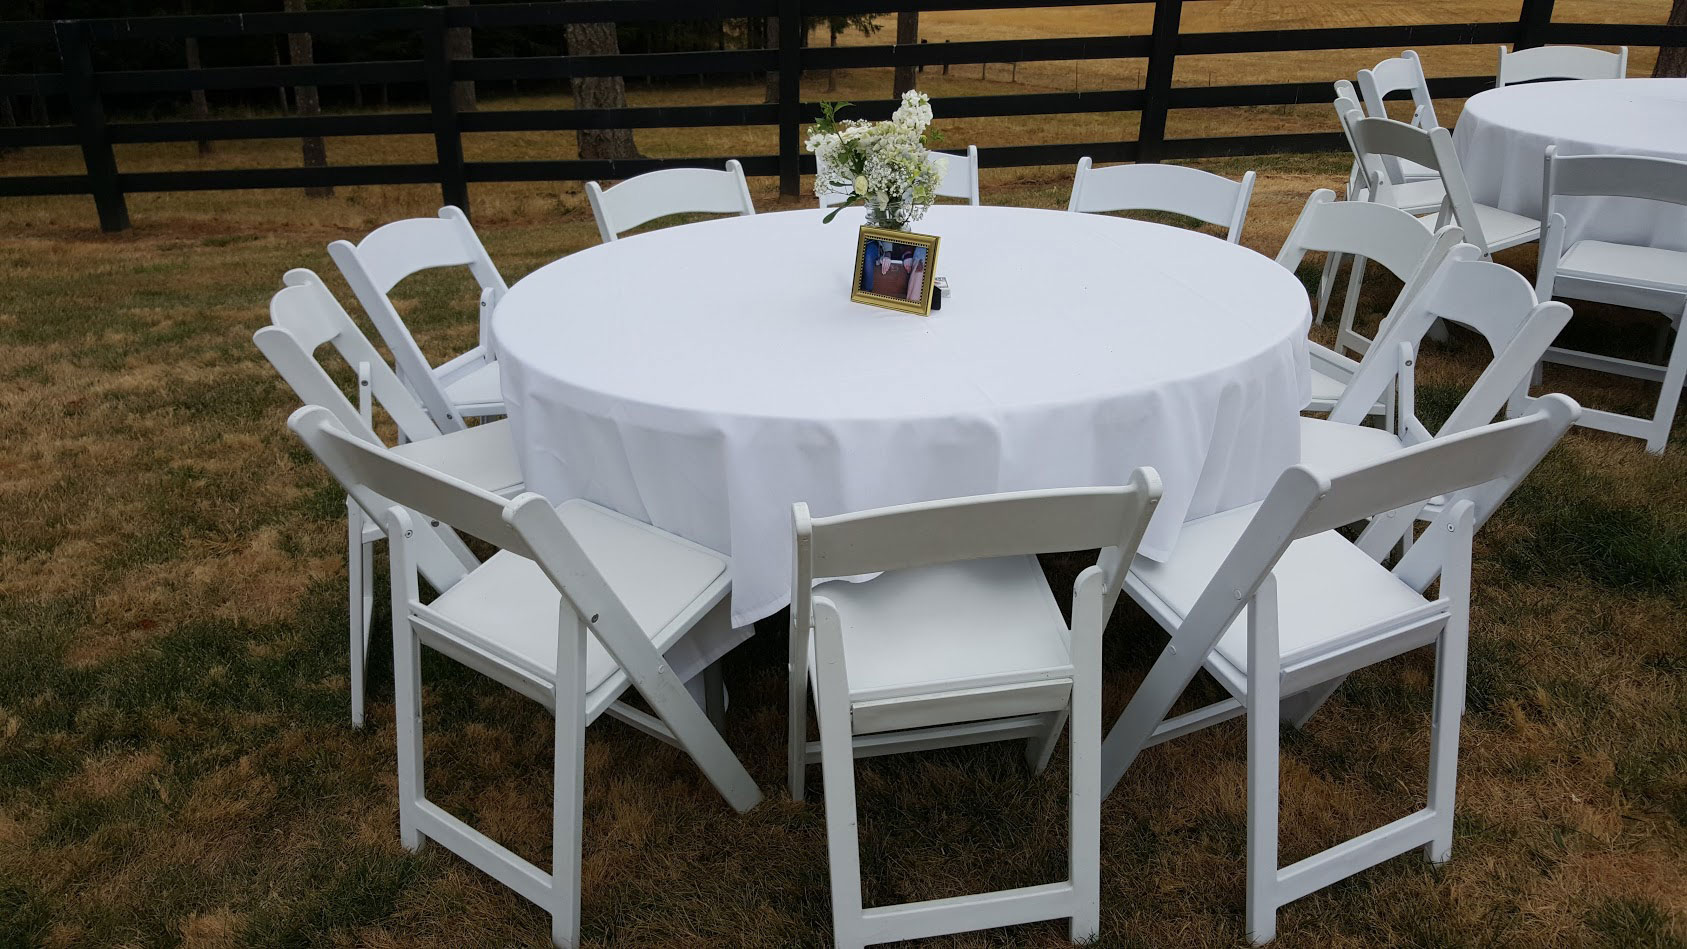 Resin Folding Chairs Destination Events White Resin Folding Chairs